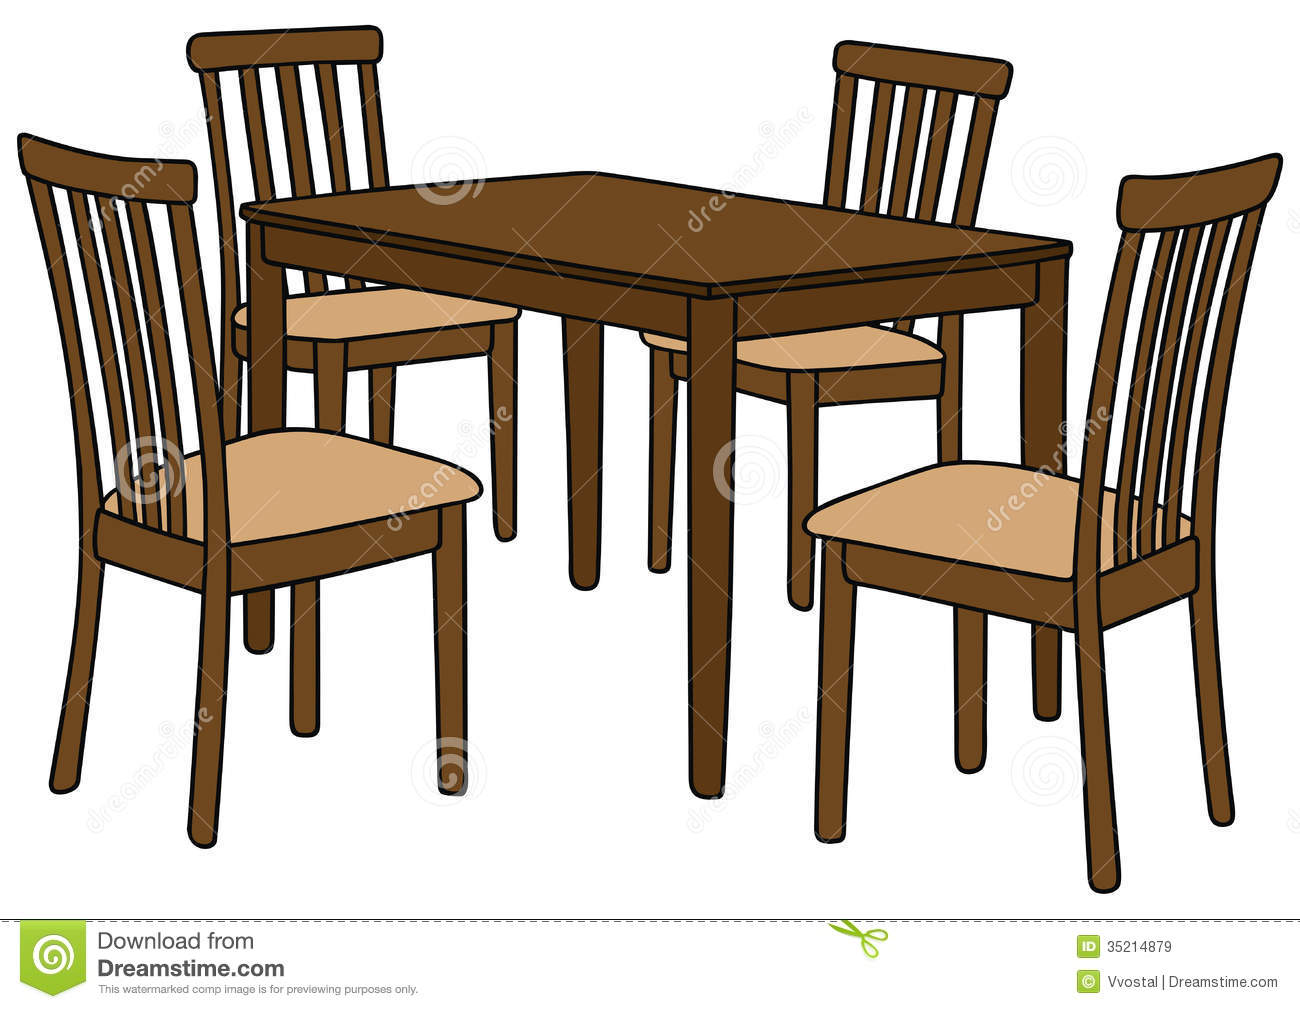 round dining table clip art clipart panda free clipart images. Black Bedroom Furniture Sets. Home Design Ideas